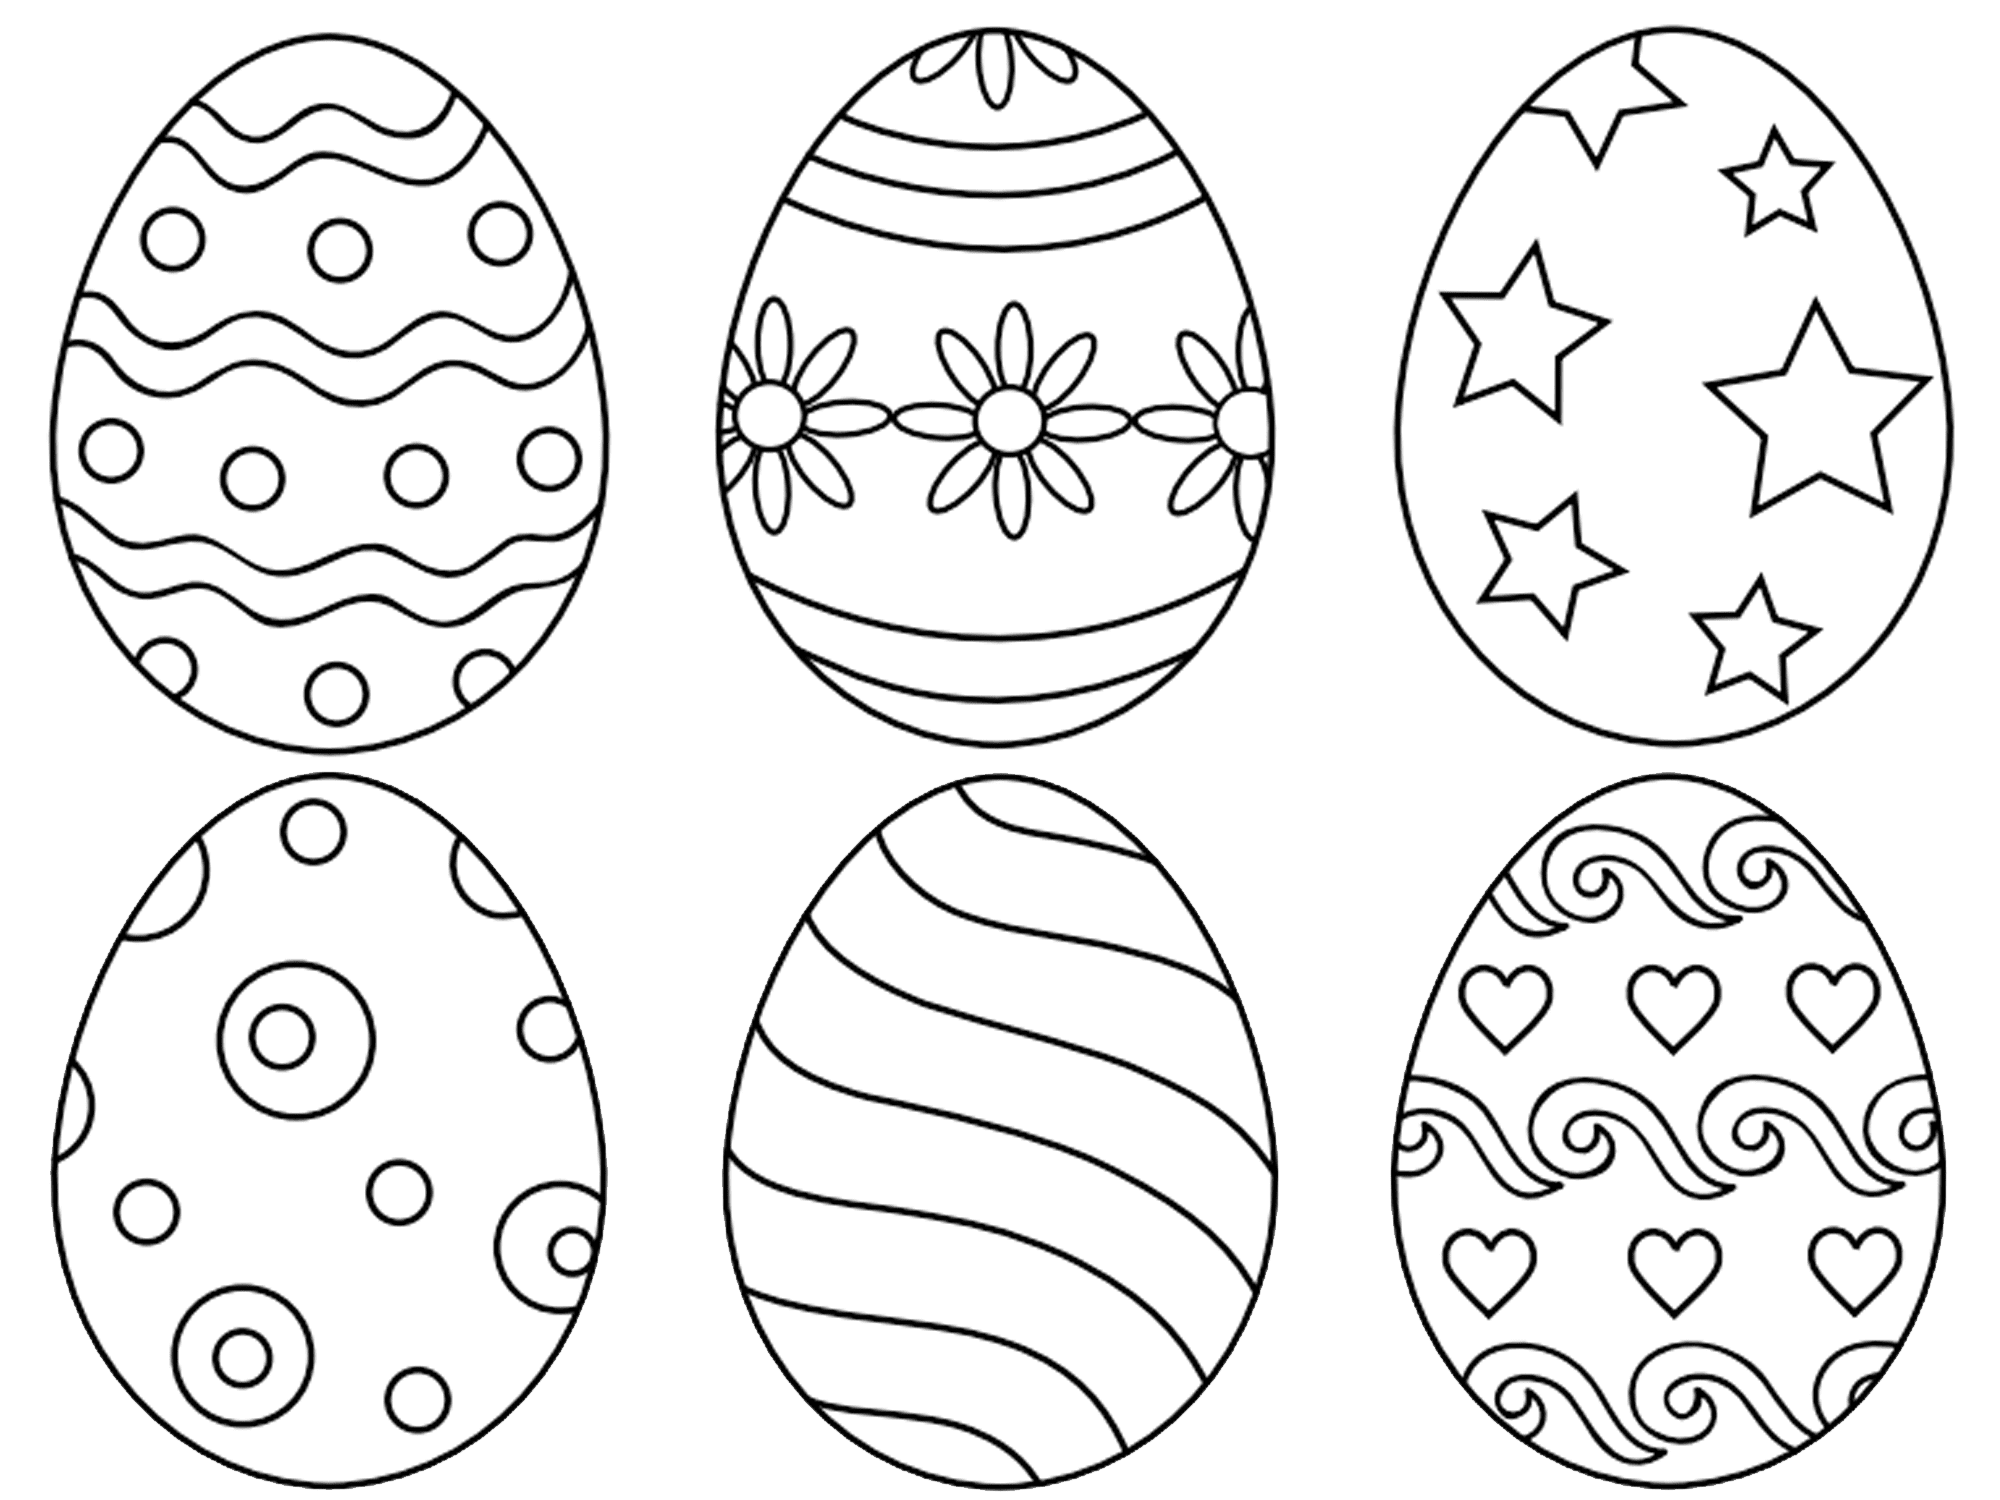 Easter Egg Coloring Pages At First Palette Six Eggs With Various Designs